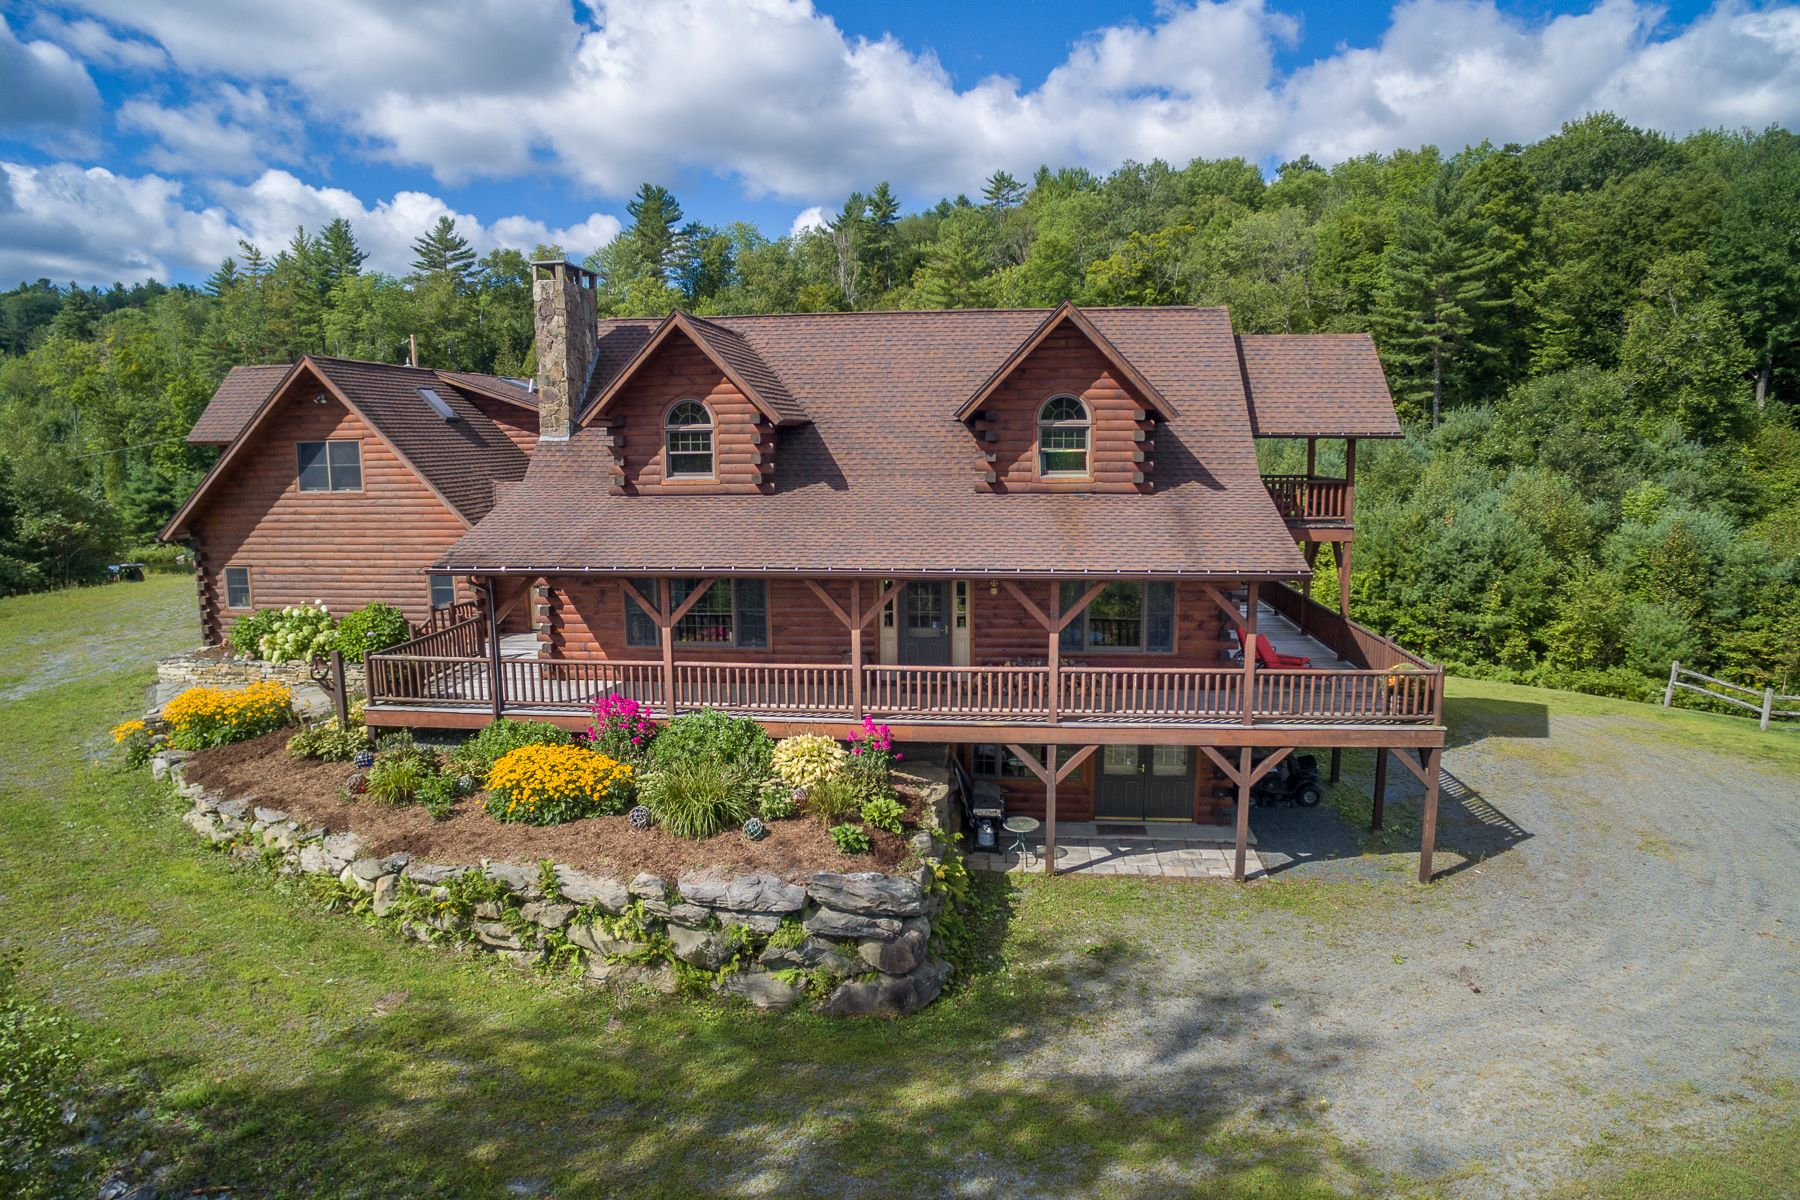 Single Family Home for Sale at Four Bedroom Adironack Logde on 179 Acres 154 Manley Hill Rd West Fairlee, Vermont 05083 United States